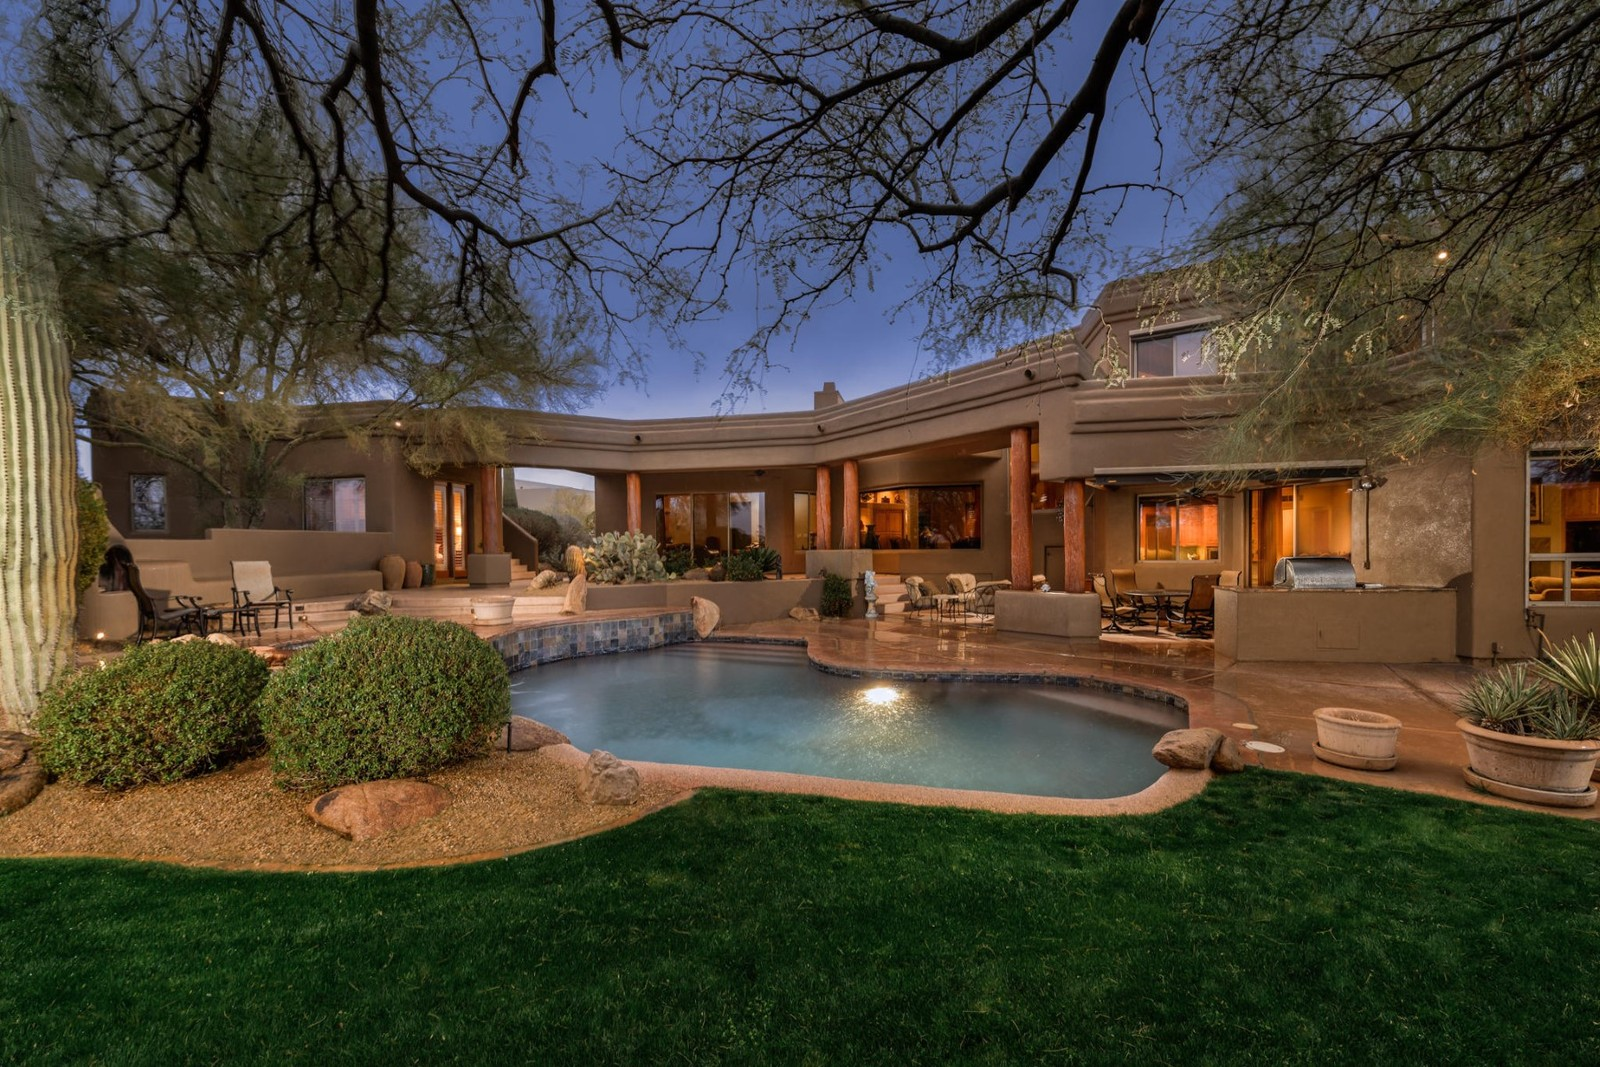 Local Desert Highlands, AZ Real Estate Listings and Homes for Sale ...